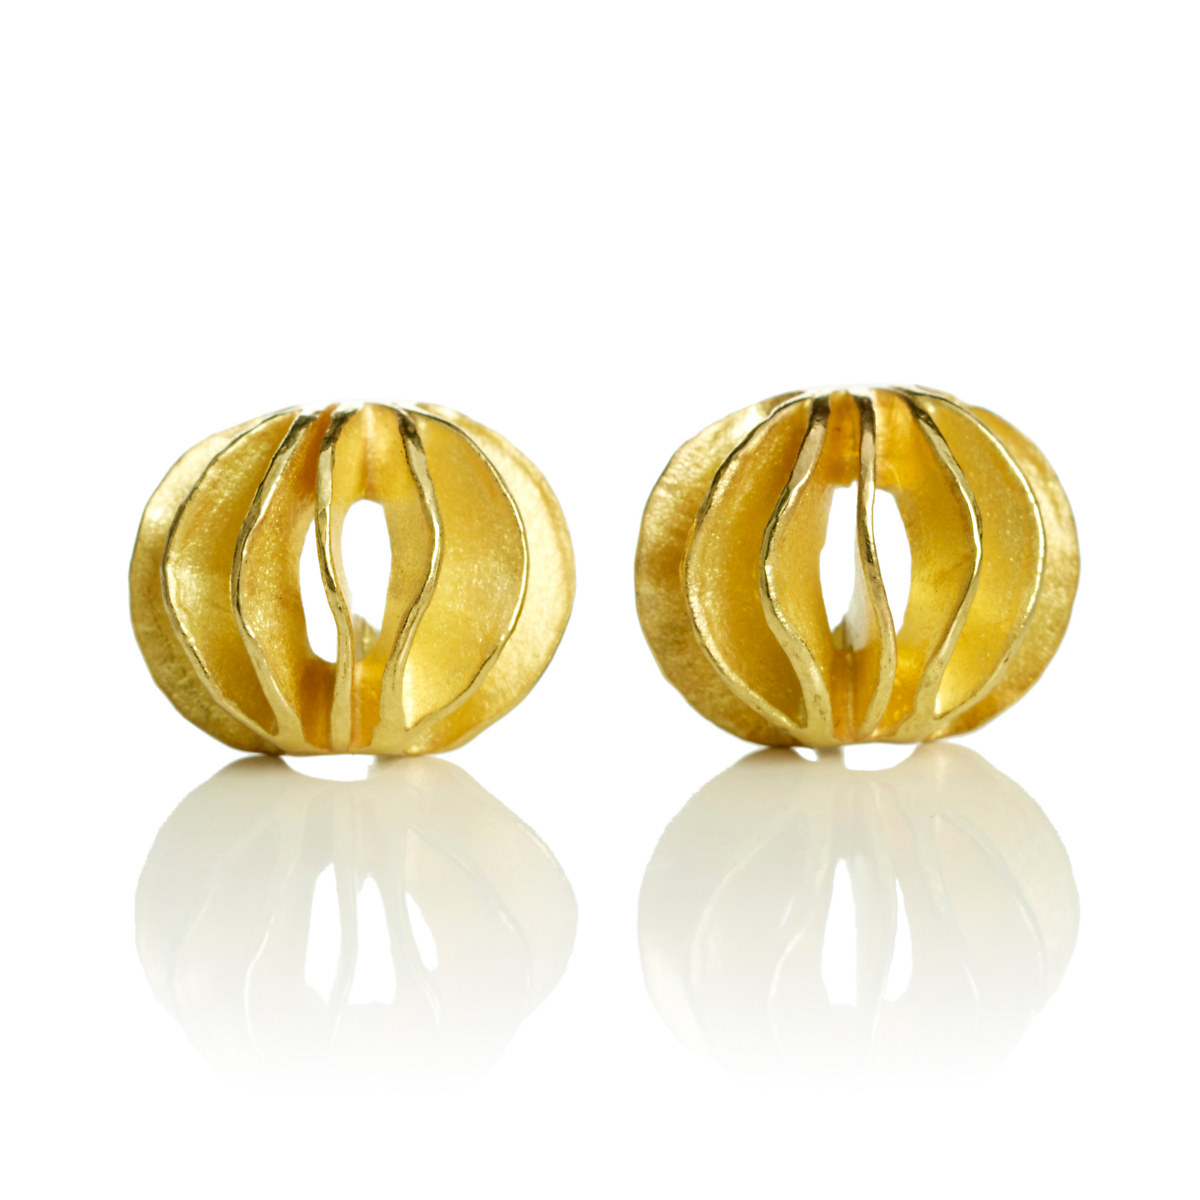 Barbara Heinrich Small Gold Waveball Earrings